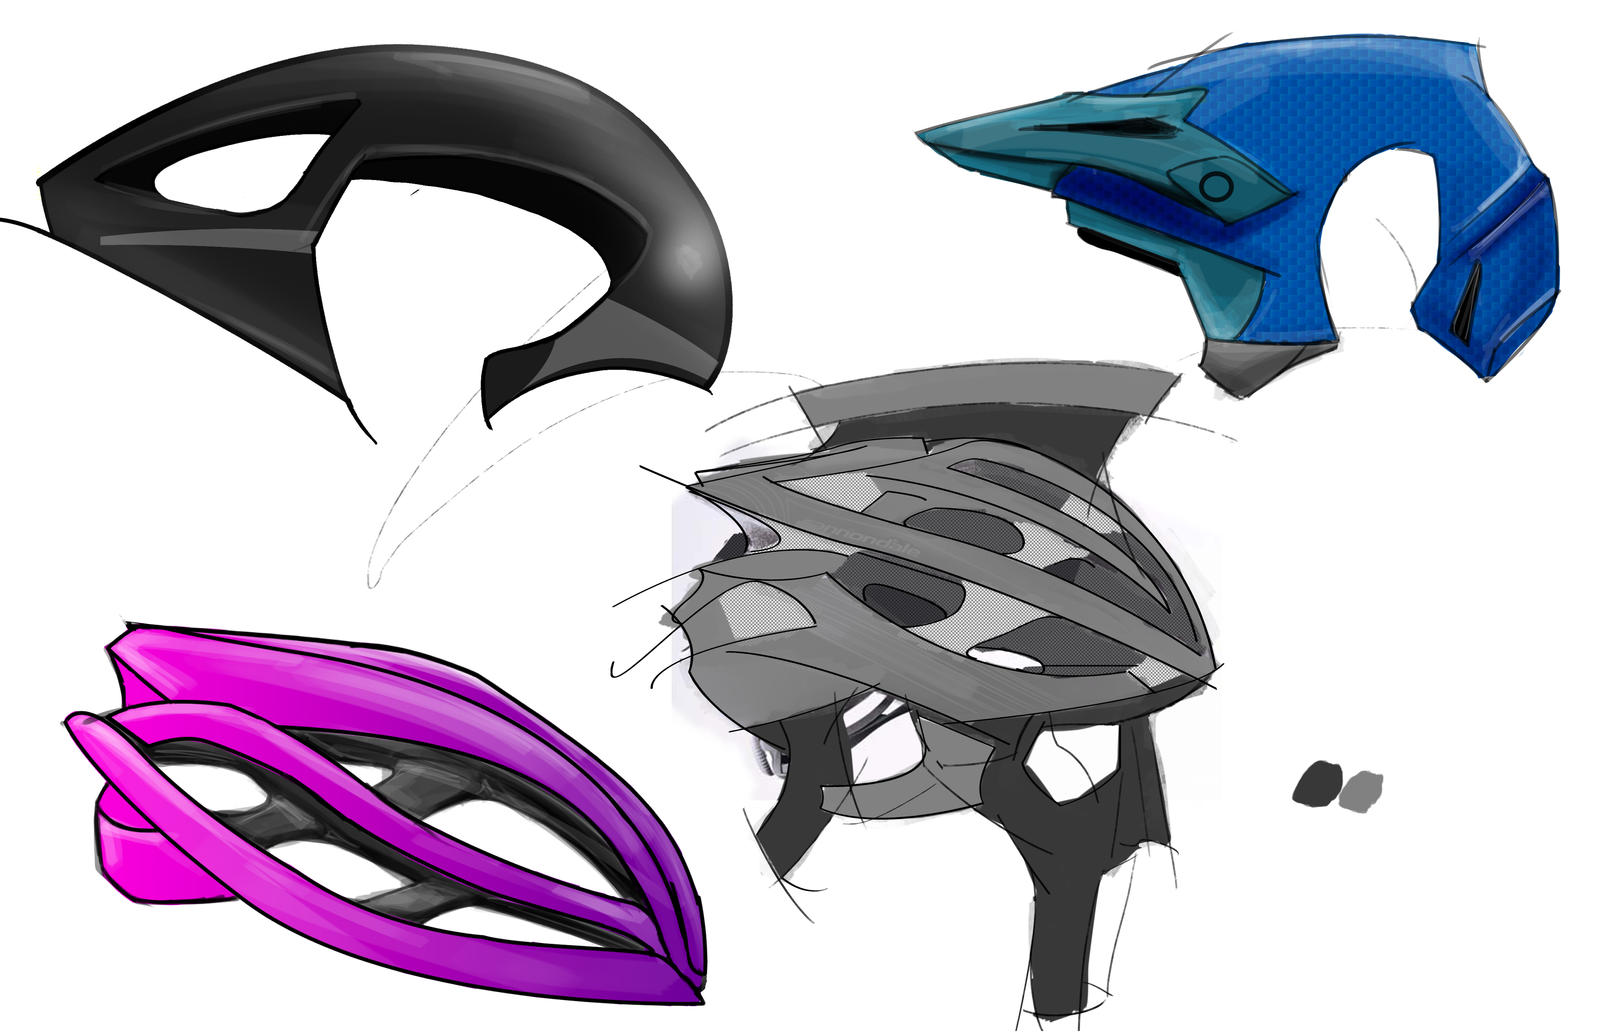 Bike Helmets Page 2 by all-one-line